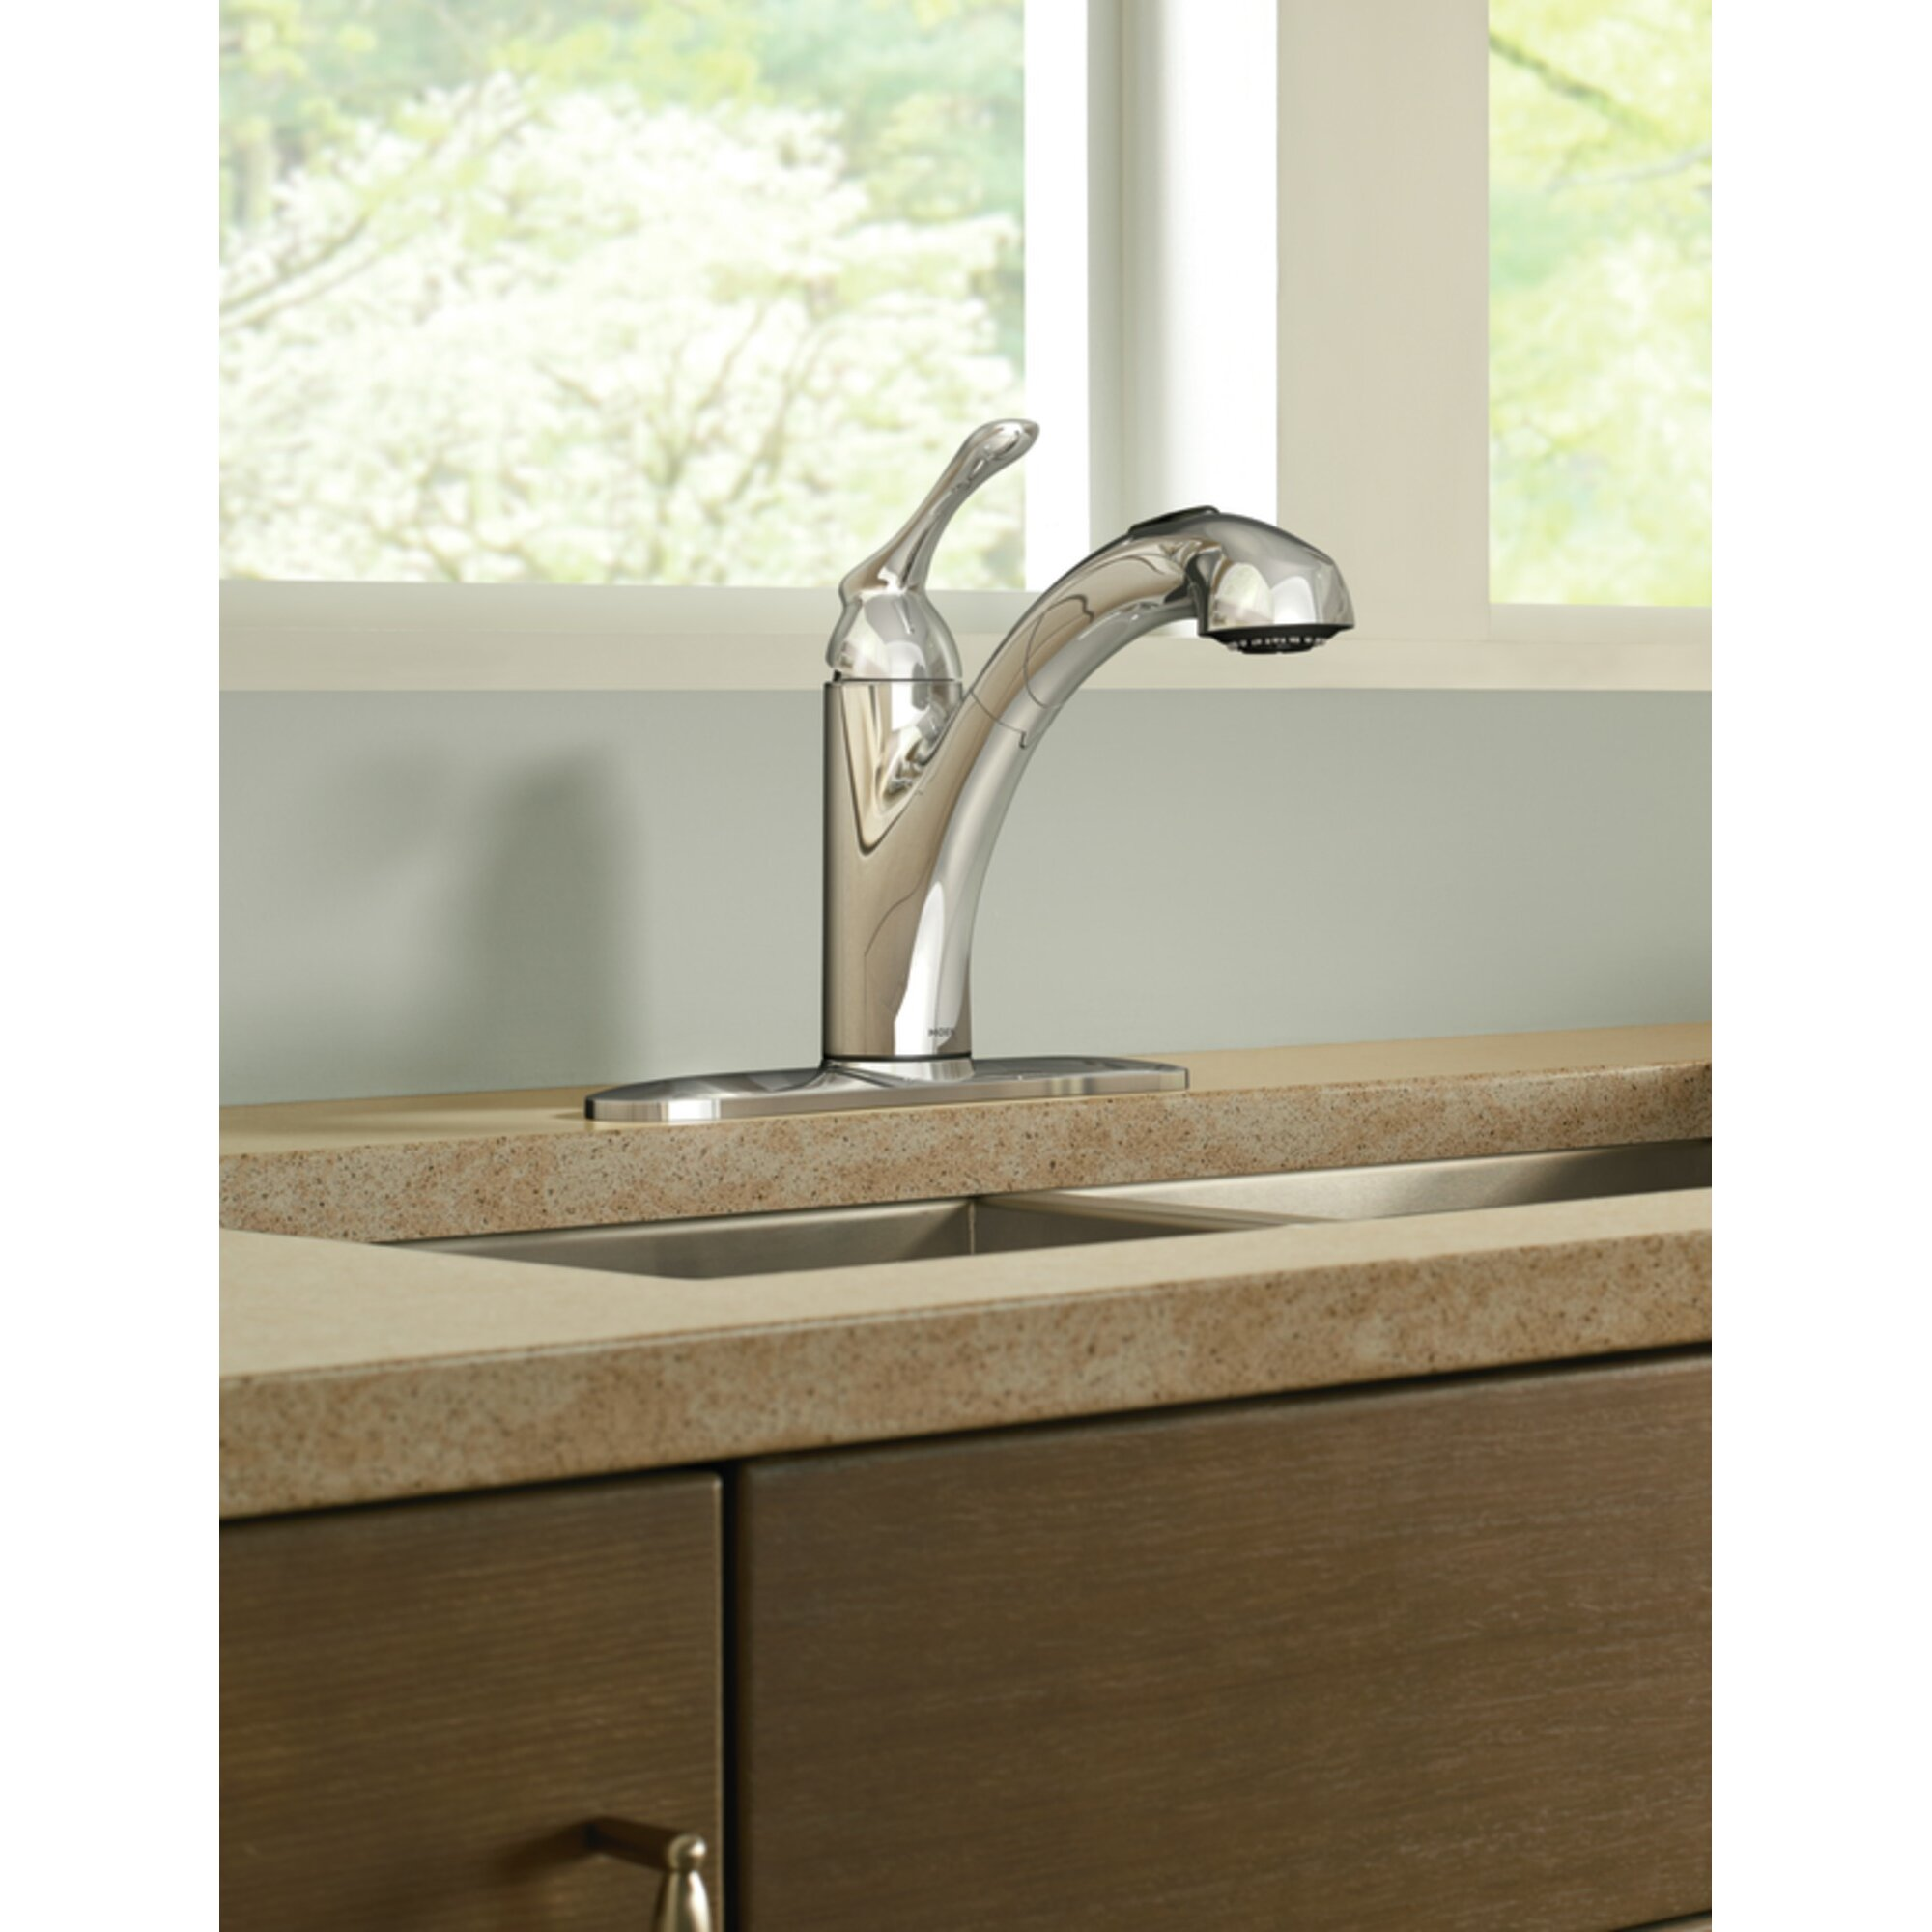 Moen Banbury Single Handle Deck mounted Kitchen Faucet